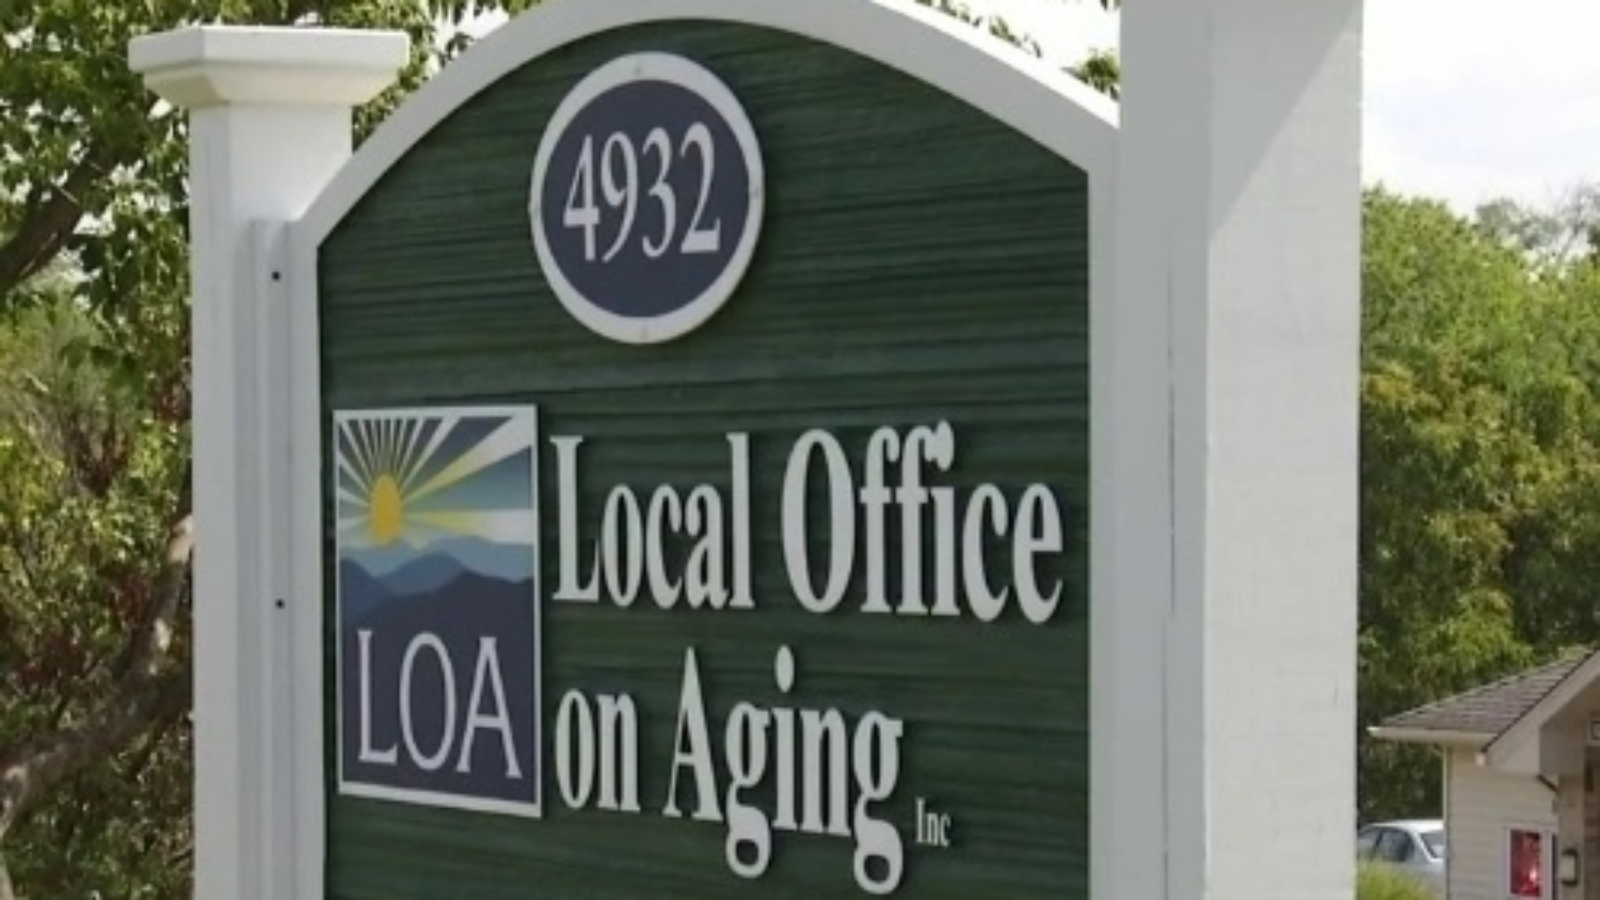 Local Office On Aging Can Still Serve Seniors With The Help Of Stem Audio